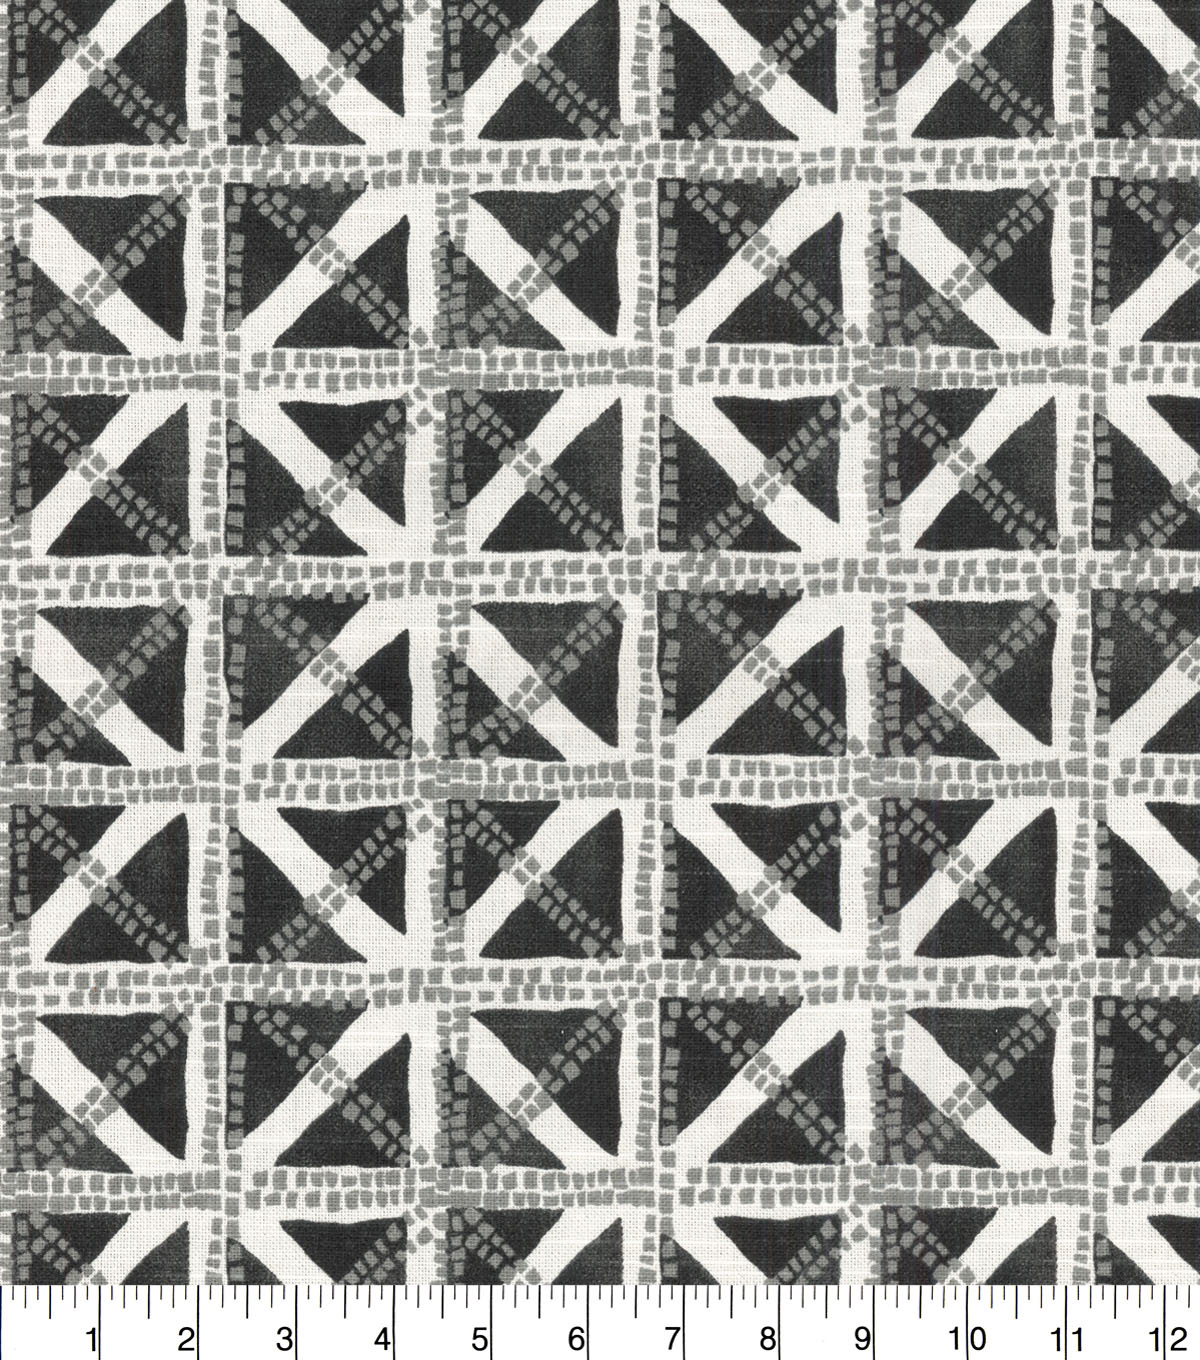 Waverly Upholstery Fabric 13x13\u0022 Swatch-Squared Away Charcoal